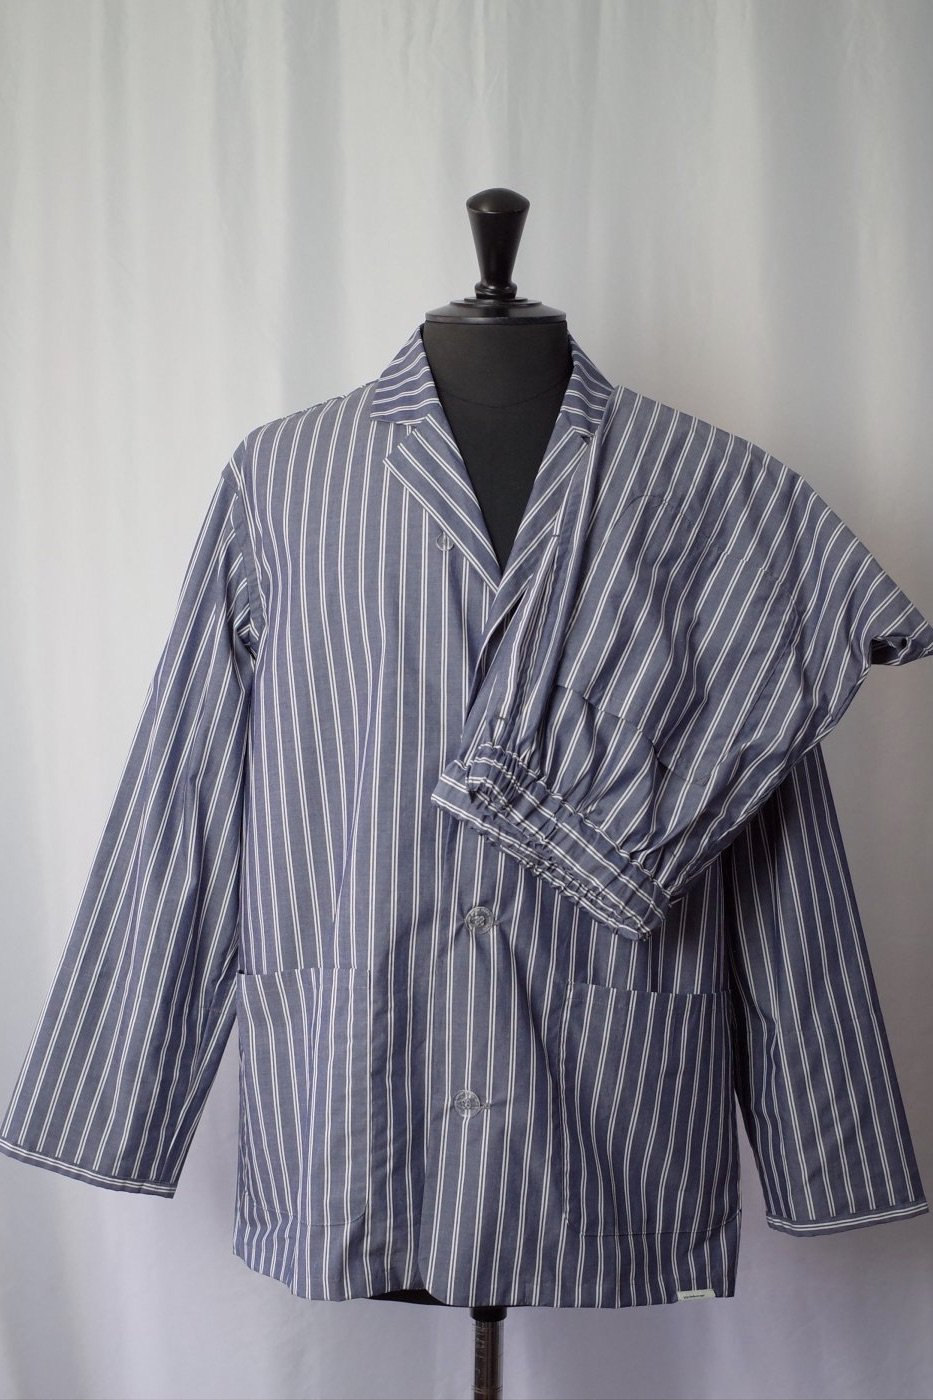 NOWHAW ノウハウ-DAY PAJAMA -NAVY W STRIPE-